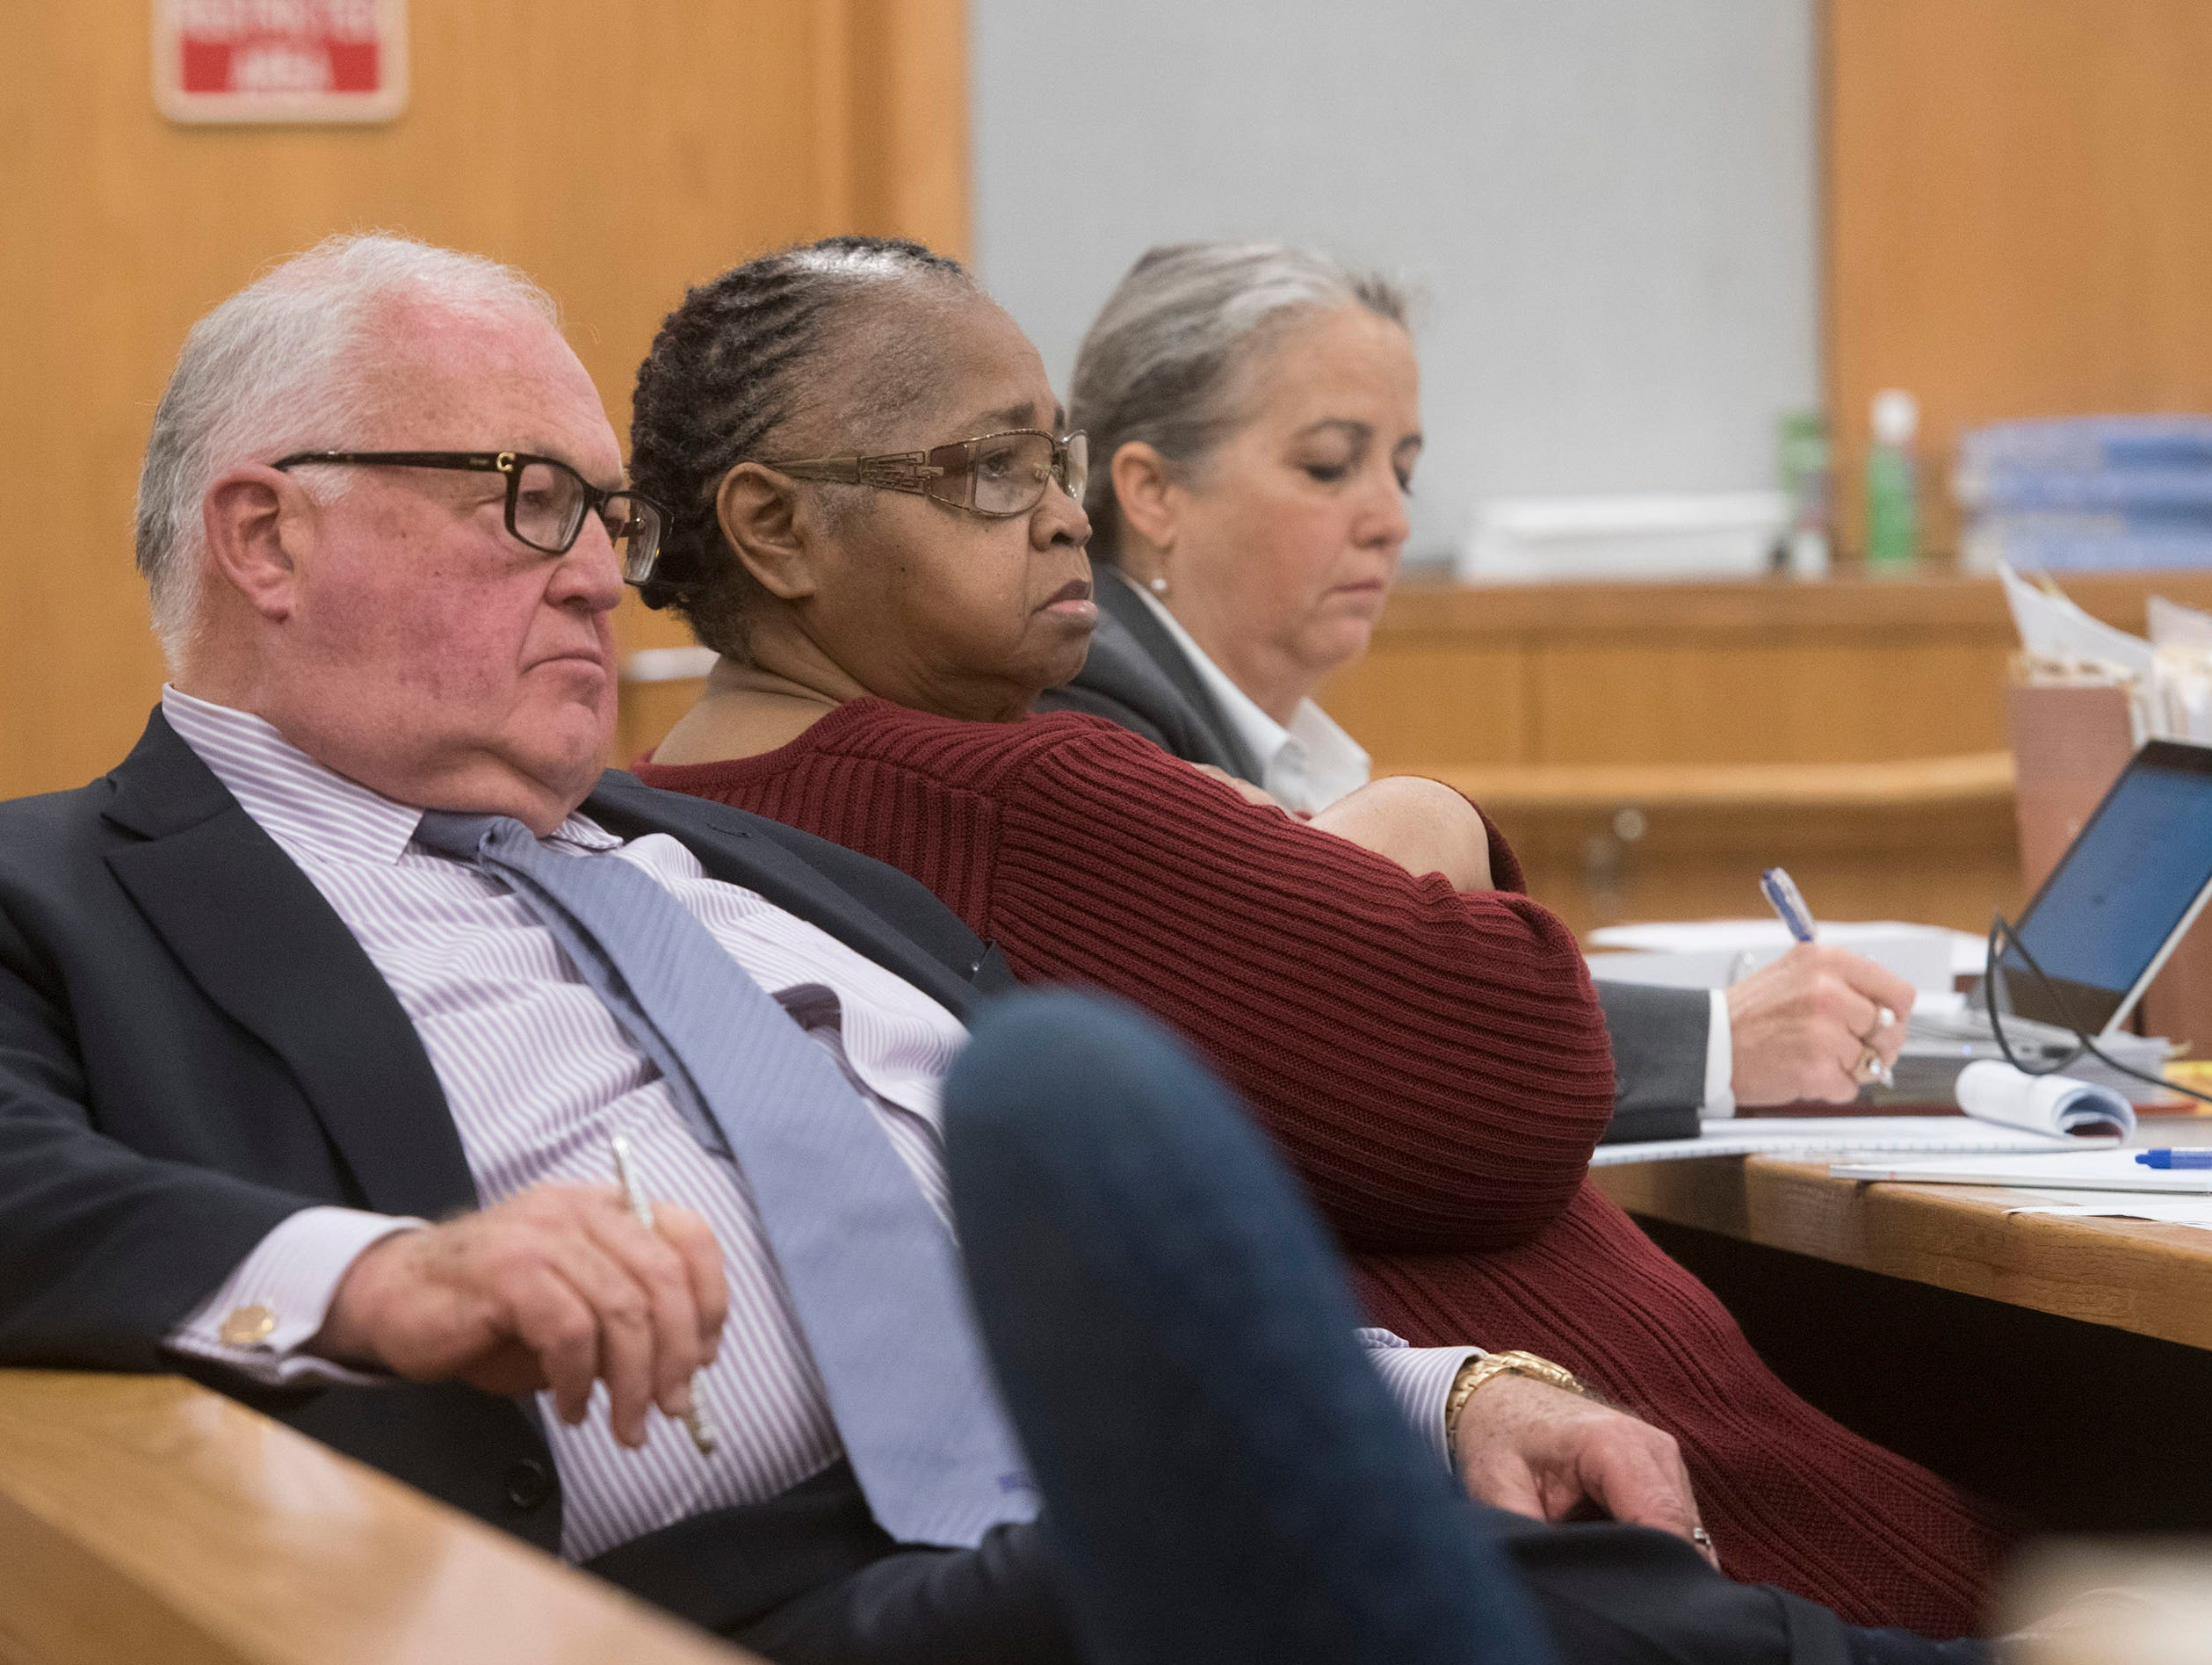 Veronica Green Posey, 66, and her attorney, Michael J. Griffith, listen to testimony during Posey's trial on Thursday, March 14, 2019. Posey is on trial for the death of her 9-year-old cousin Dericka Lindsay.